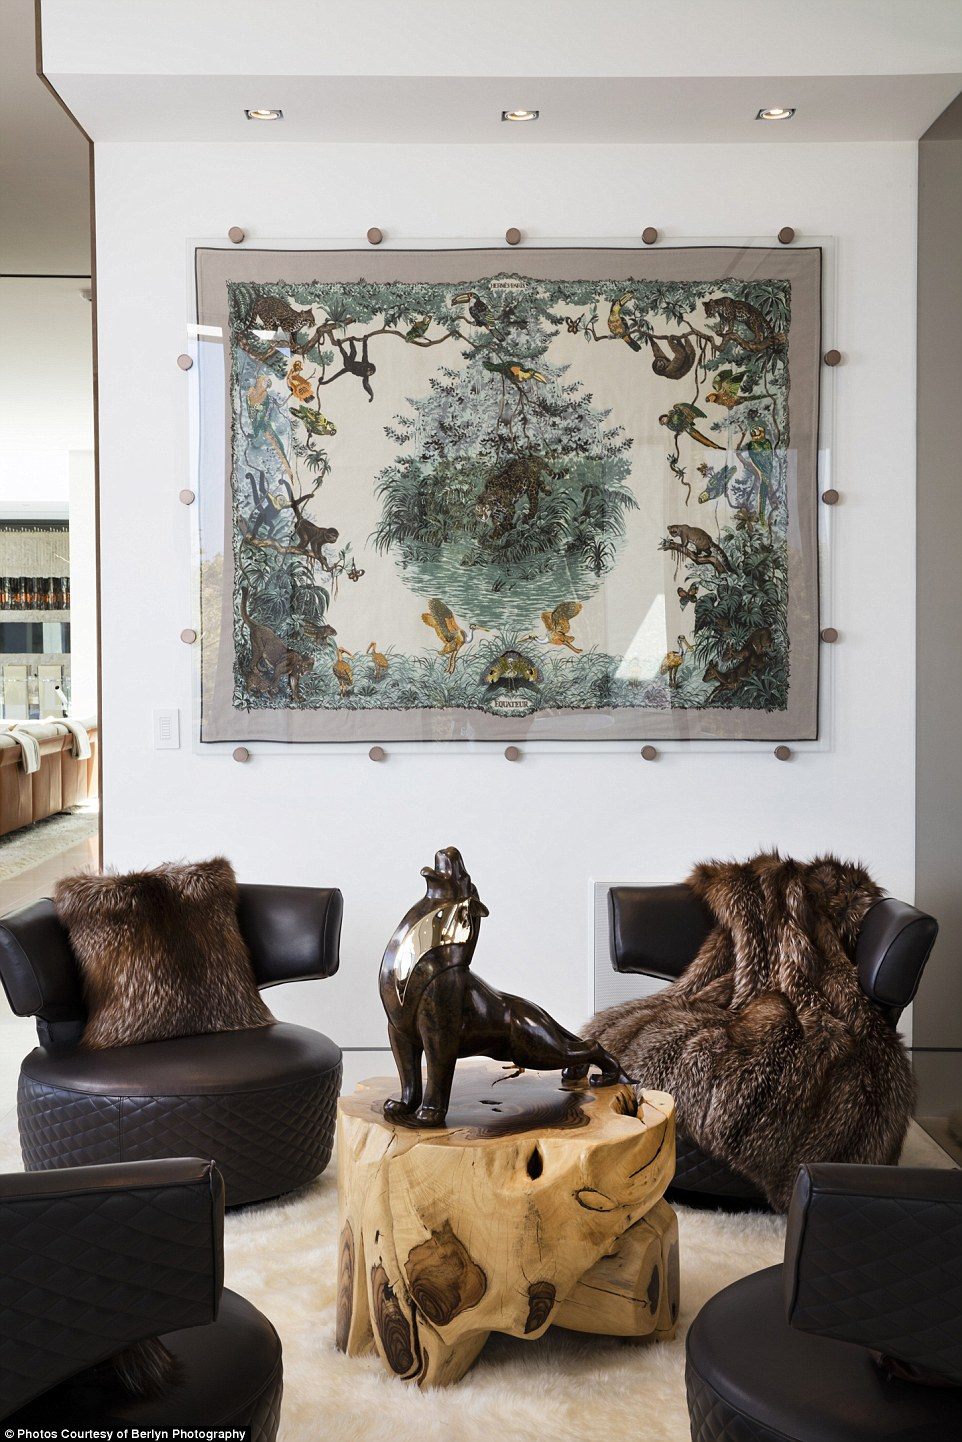 Inside the home is thisHermes Equateur Blanket, made out of cashmere and hand-embroidered with fine beads and pearls. IT has beenencased between starfire glass panels with custom-made standoffs